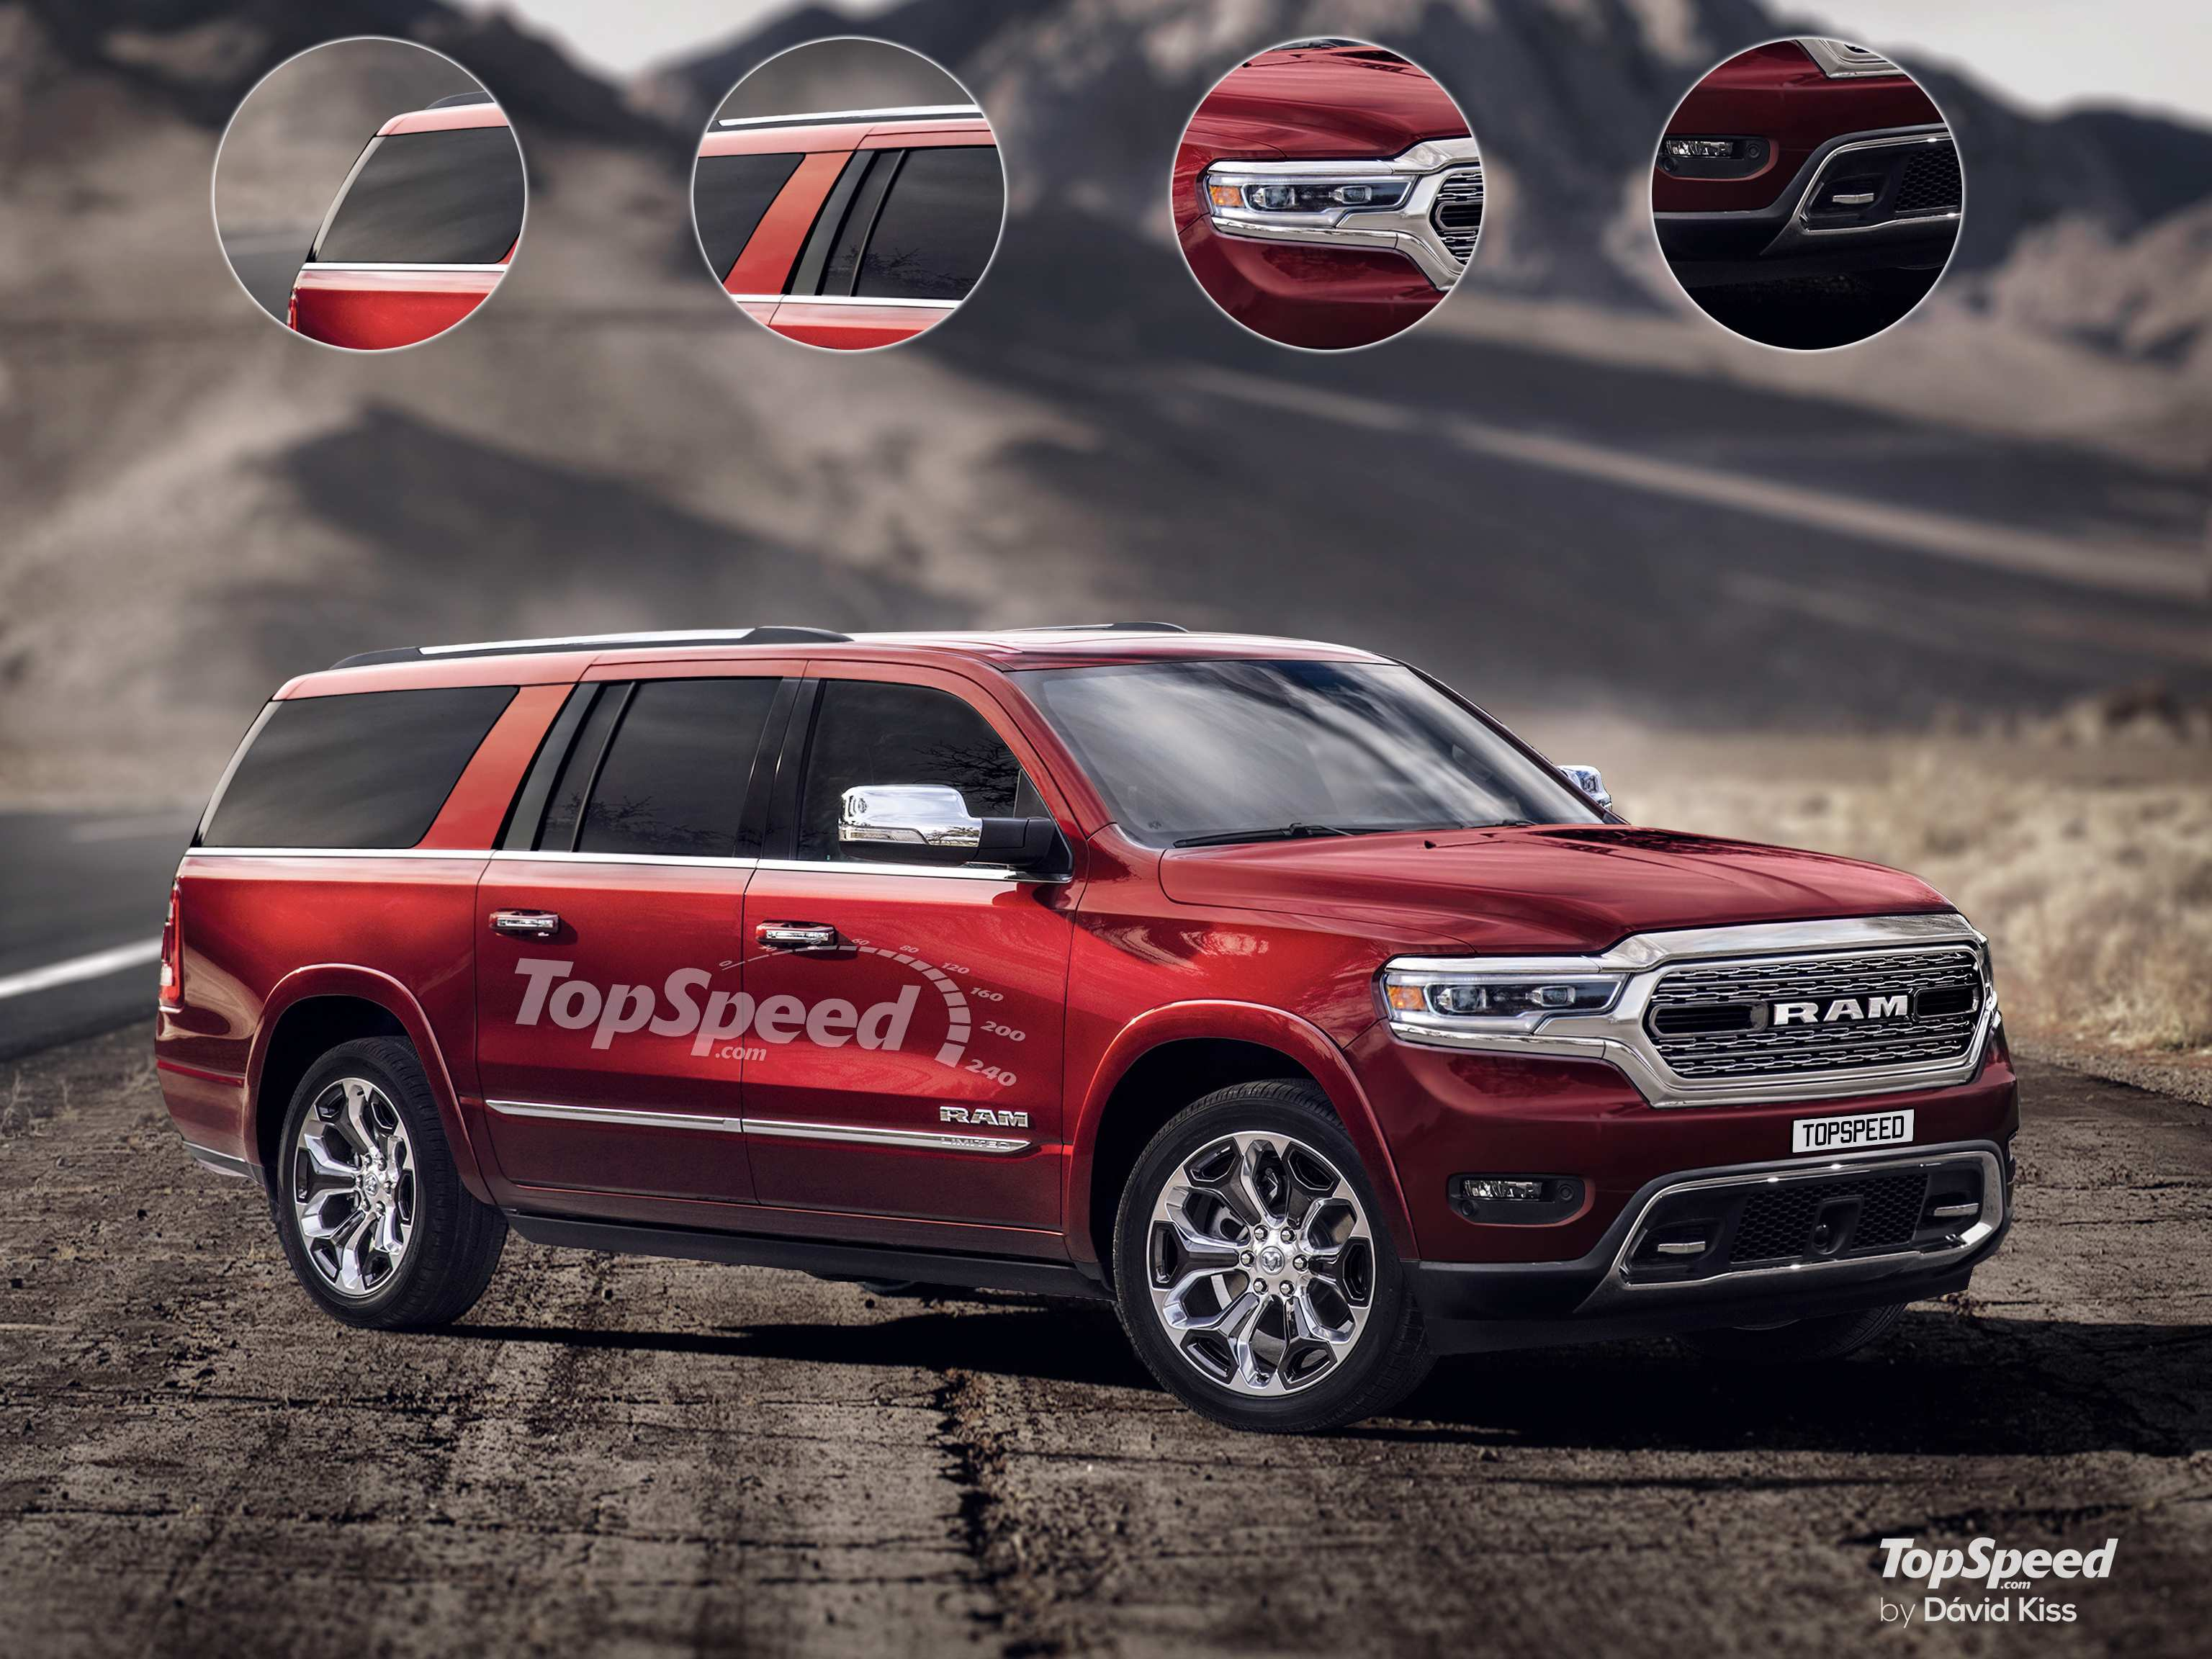 82 All New 2020 Dodge Ram Pickup Exterior and Interior by 2020 Dodge Ram Pickup